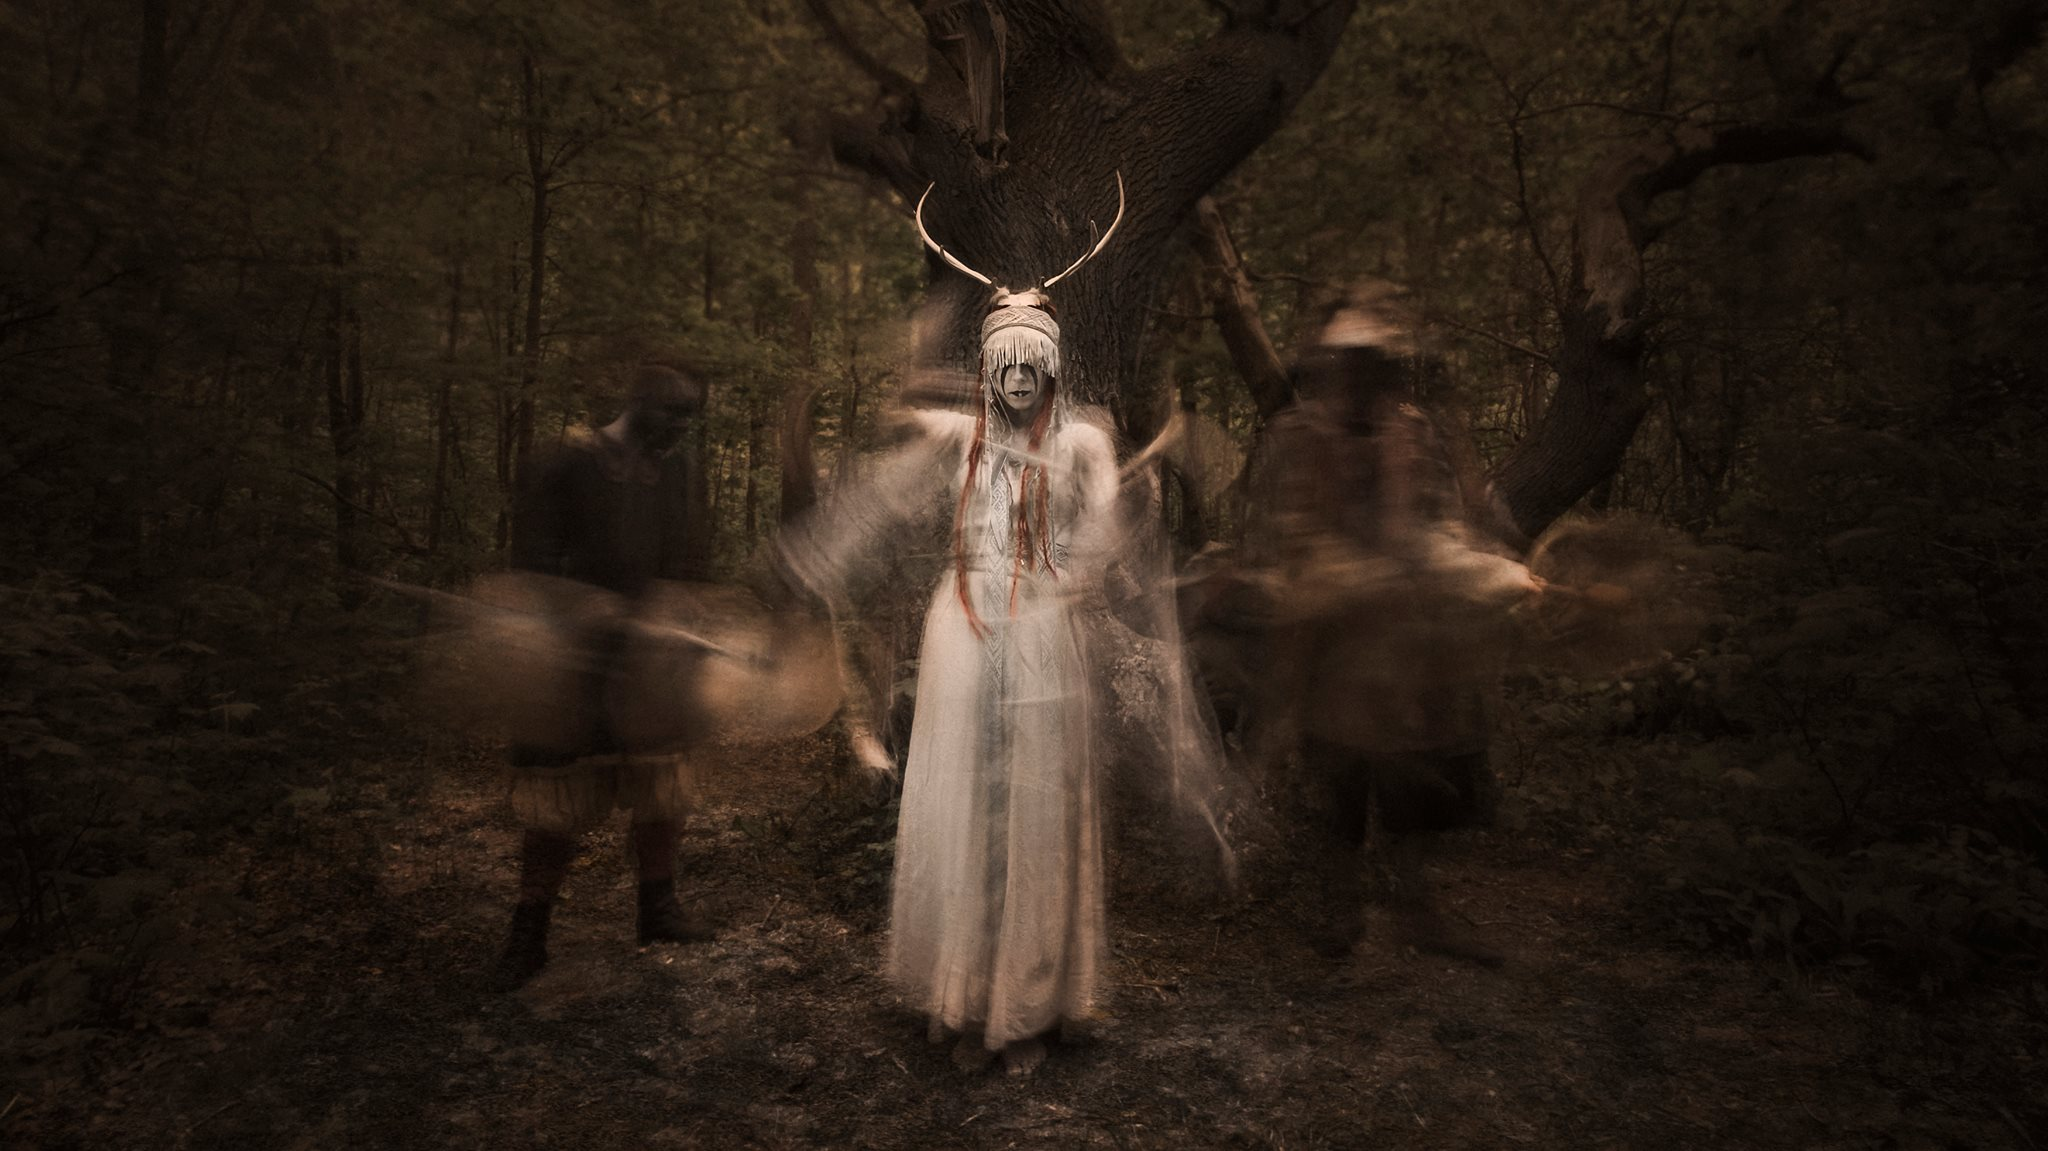 Heilung Return with an Album Announcement and Teaser